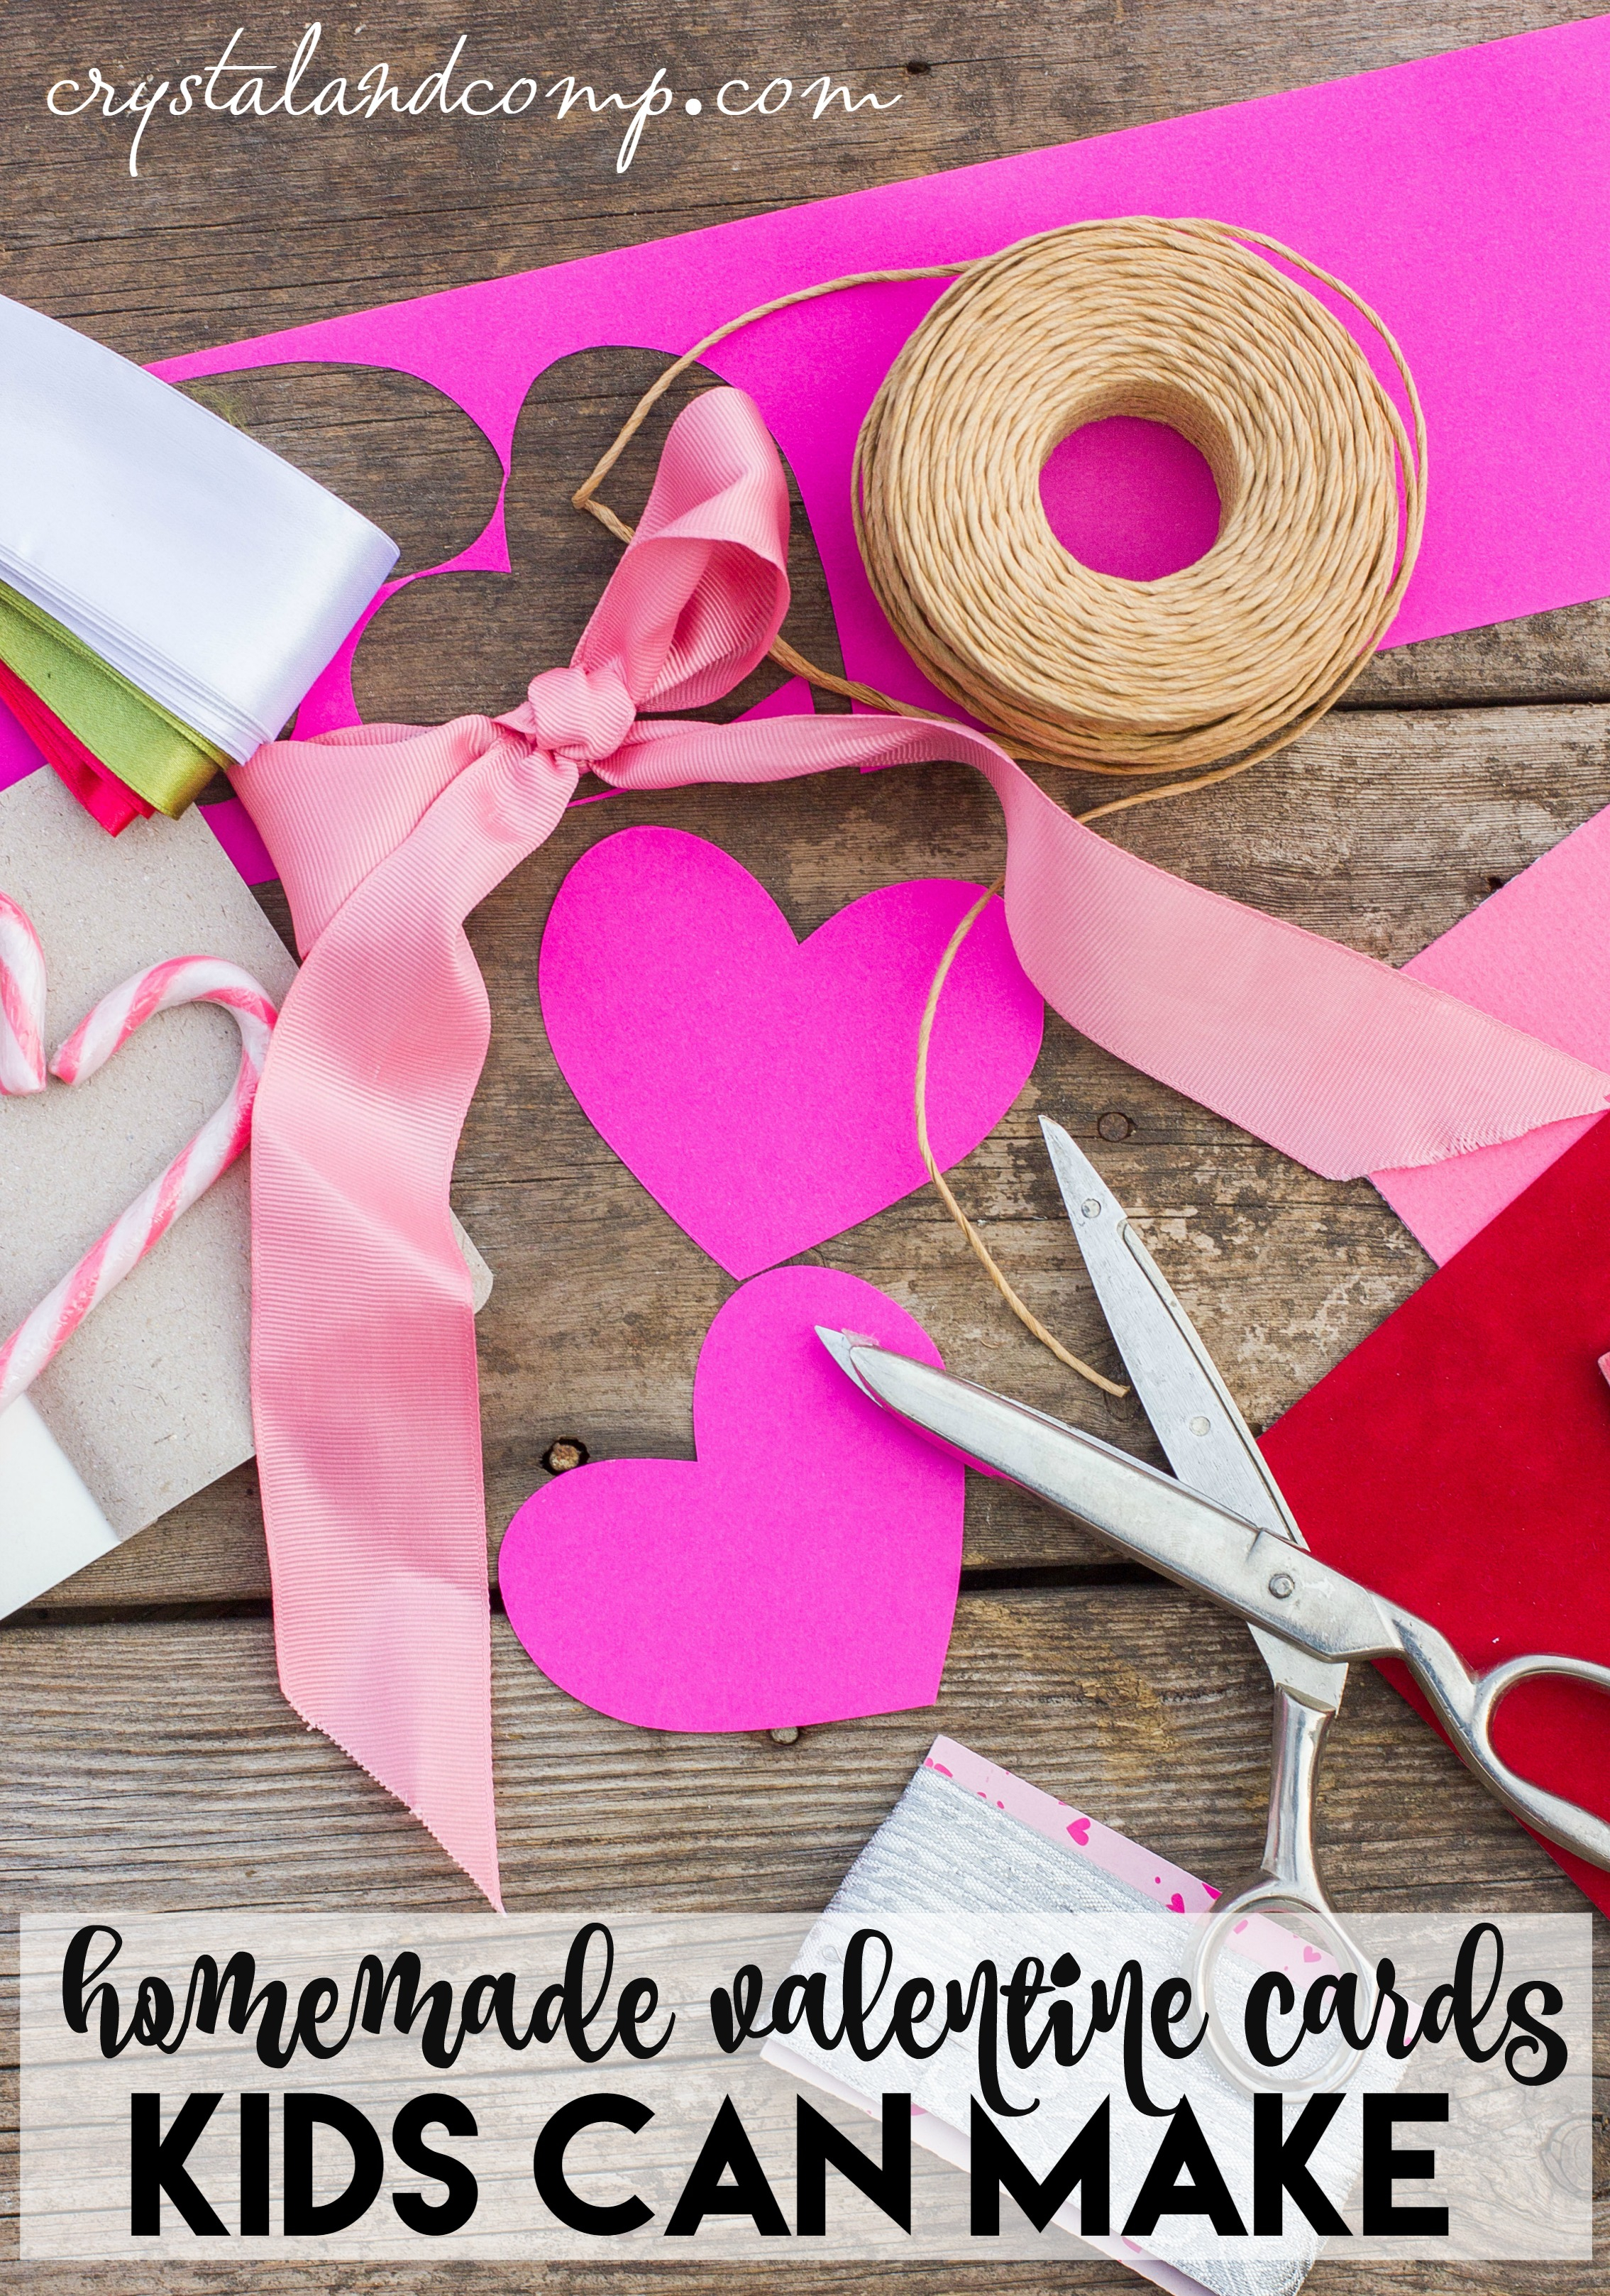 10 Best Valentine Card Ideas For Kids To Make homemade valentine cards for kids 2020